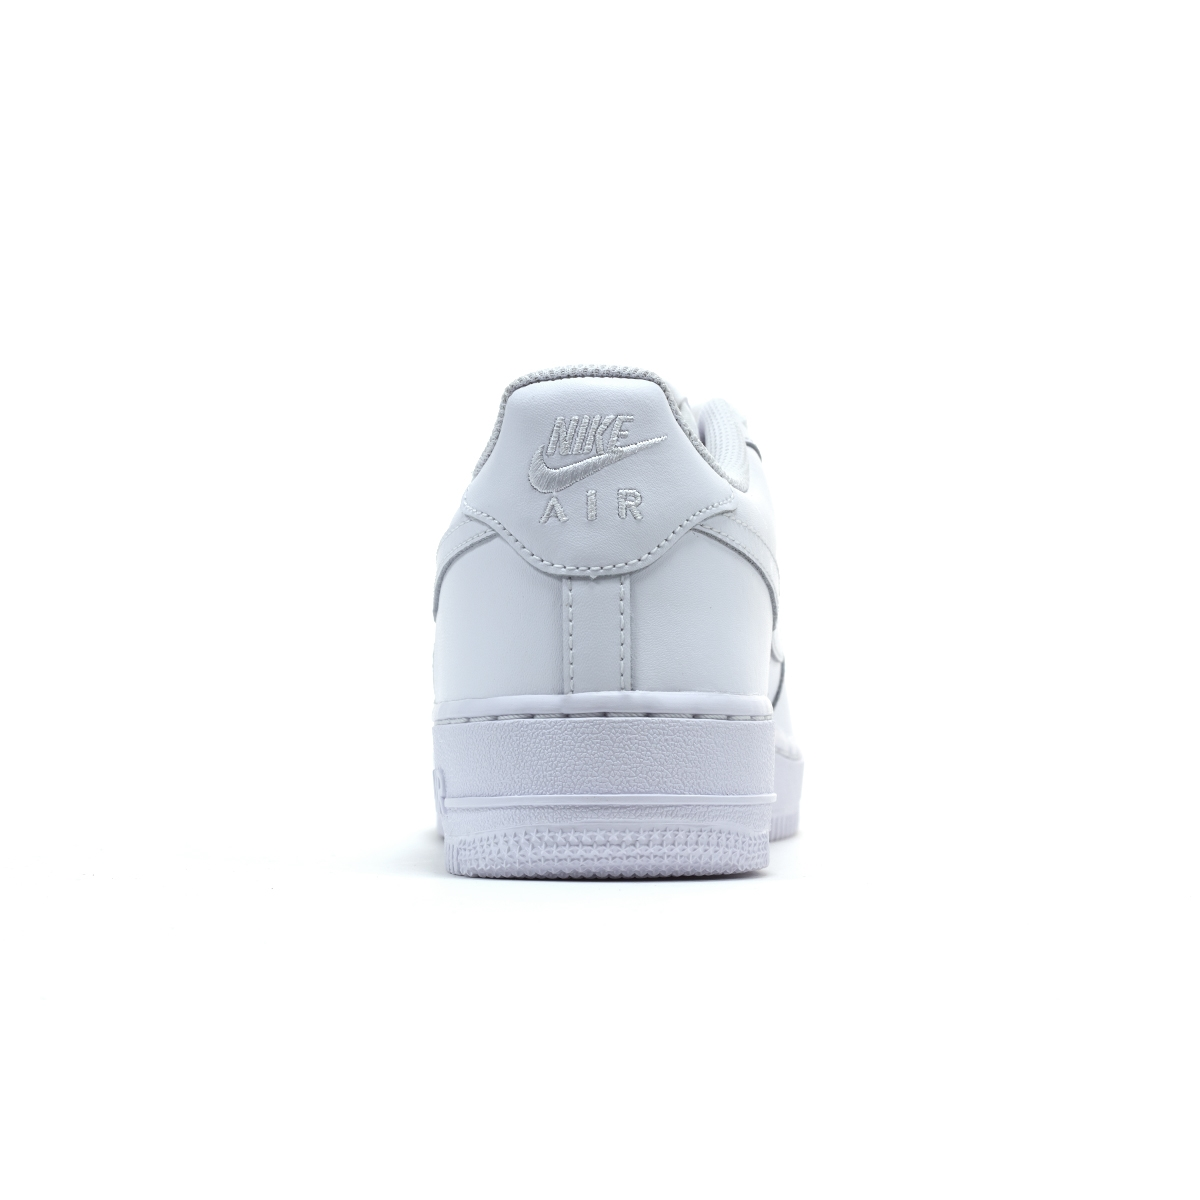 Nike Air Force 1 Low GS 314192 117 || timsport.pl